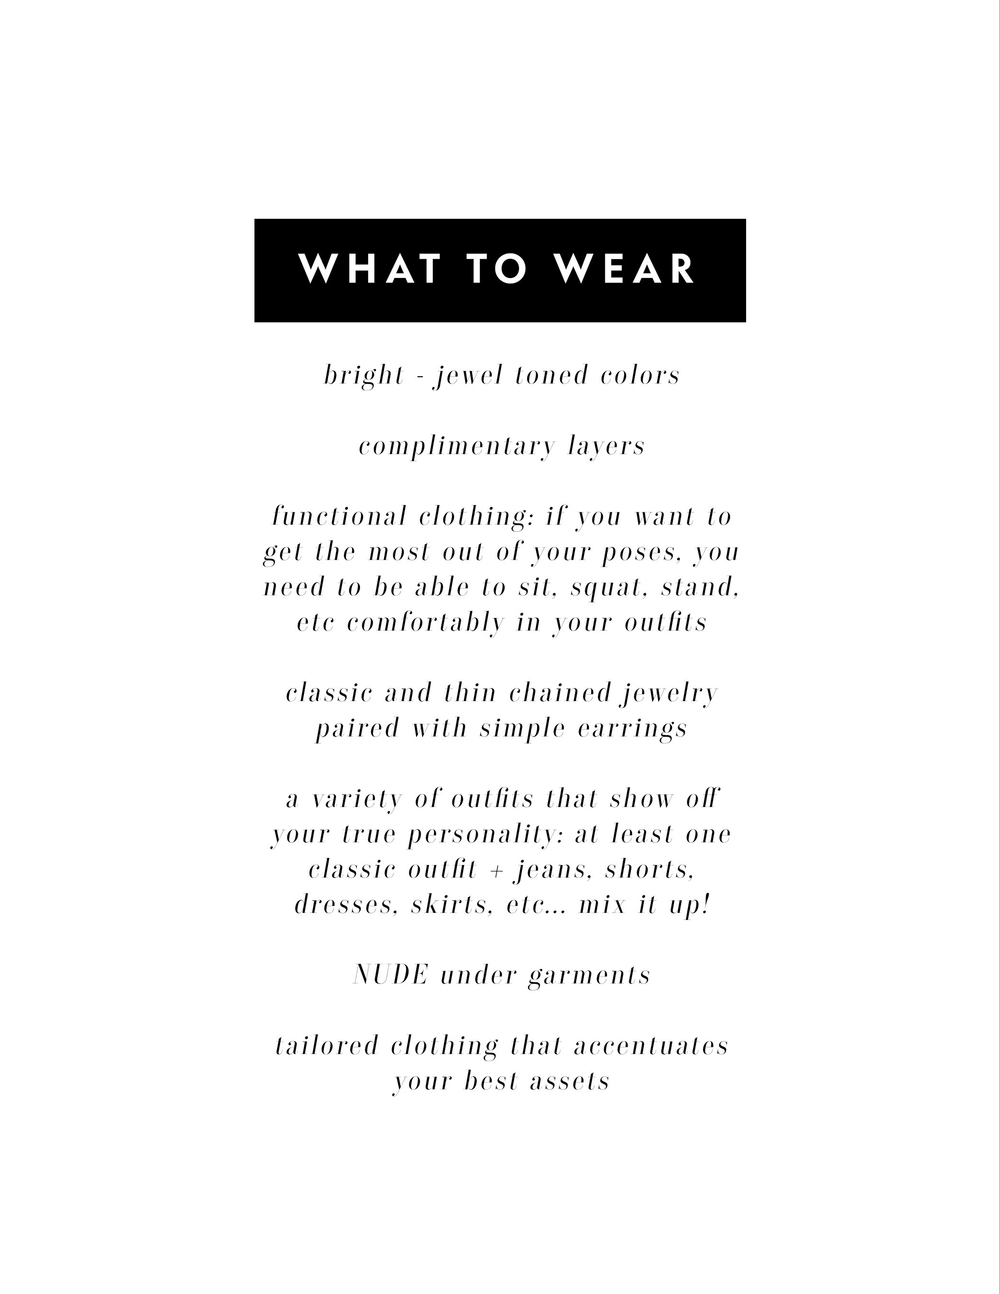 What to Wear Guide - Digital PDF-2-Left.jpg